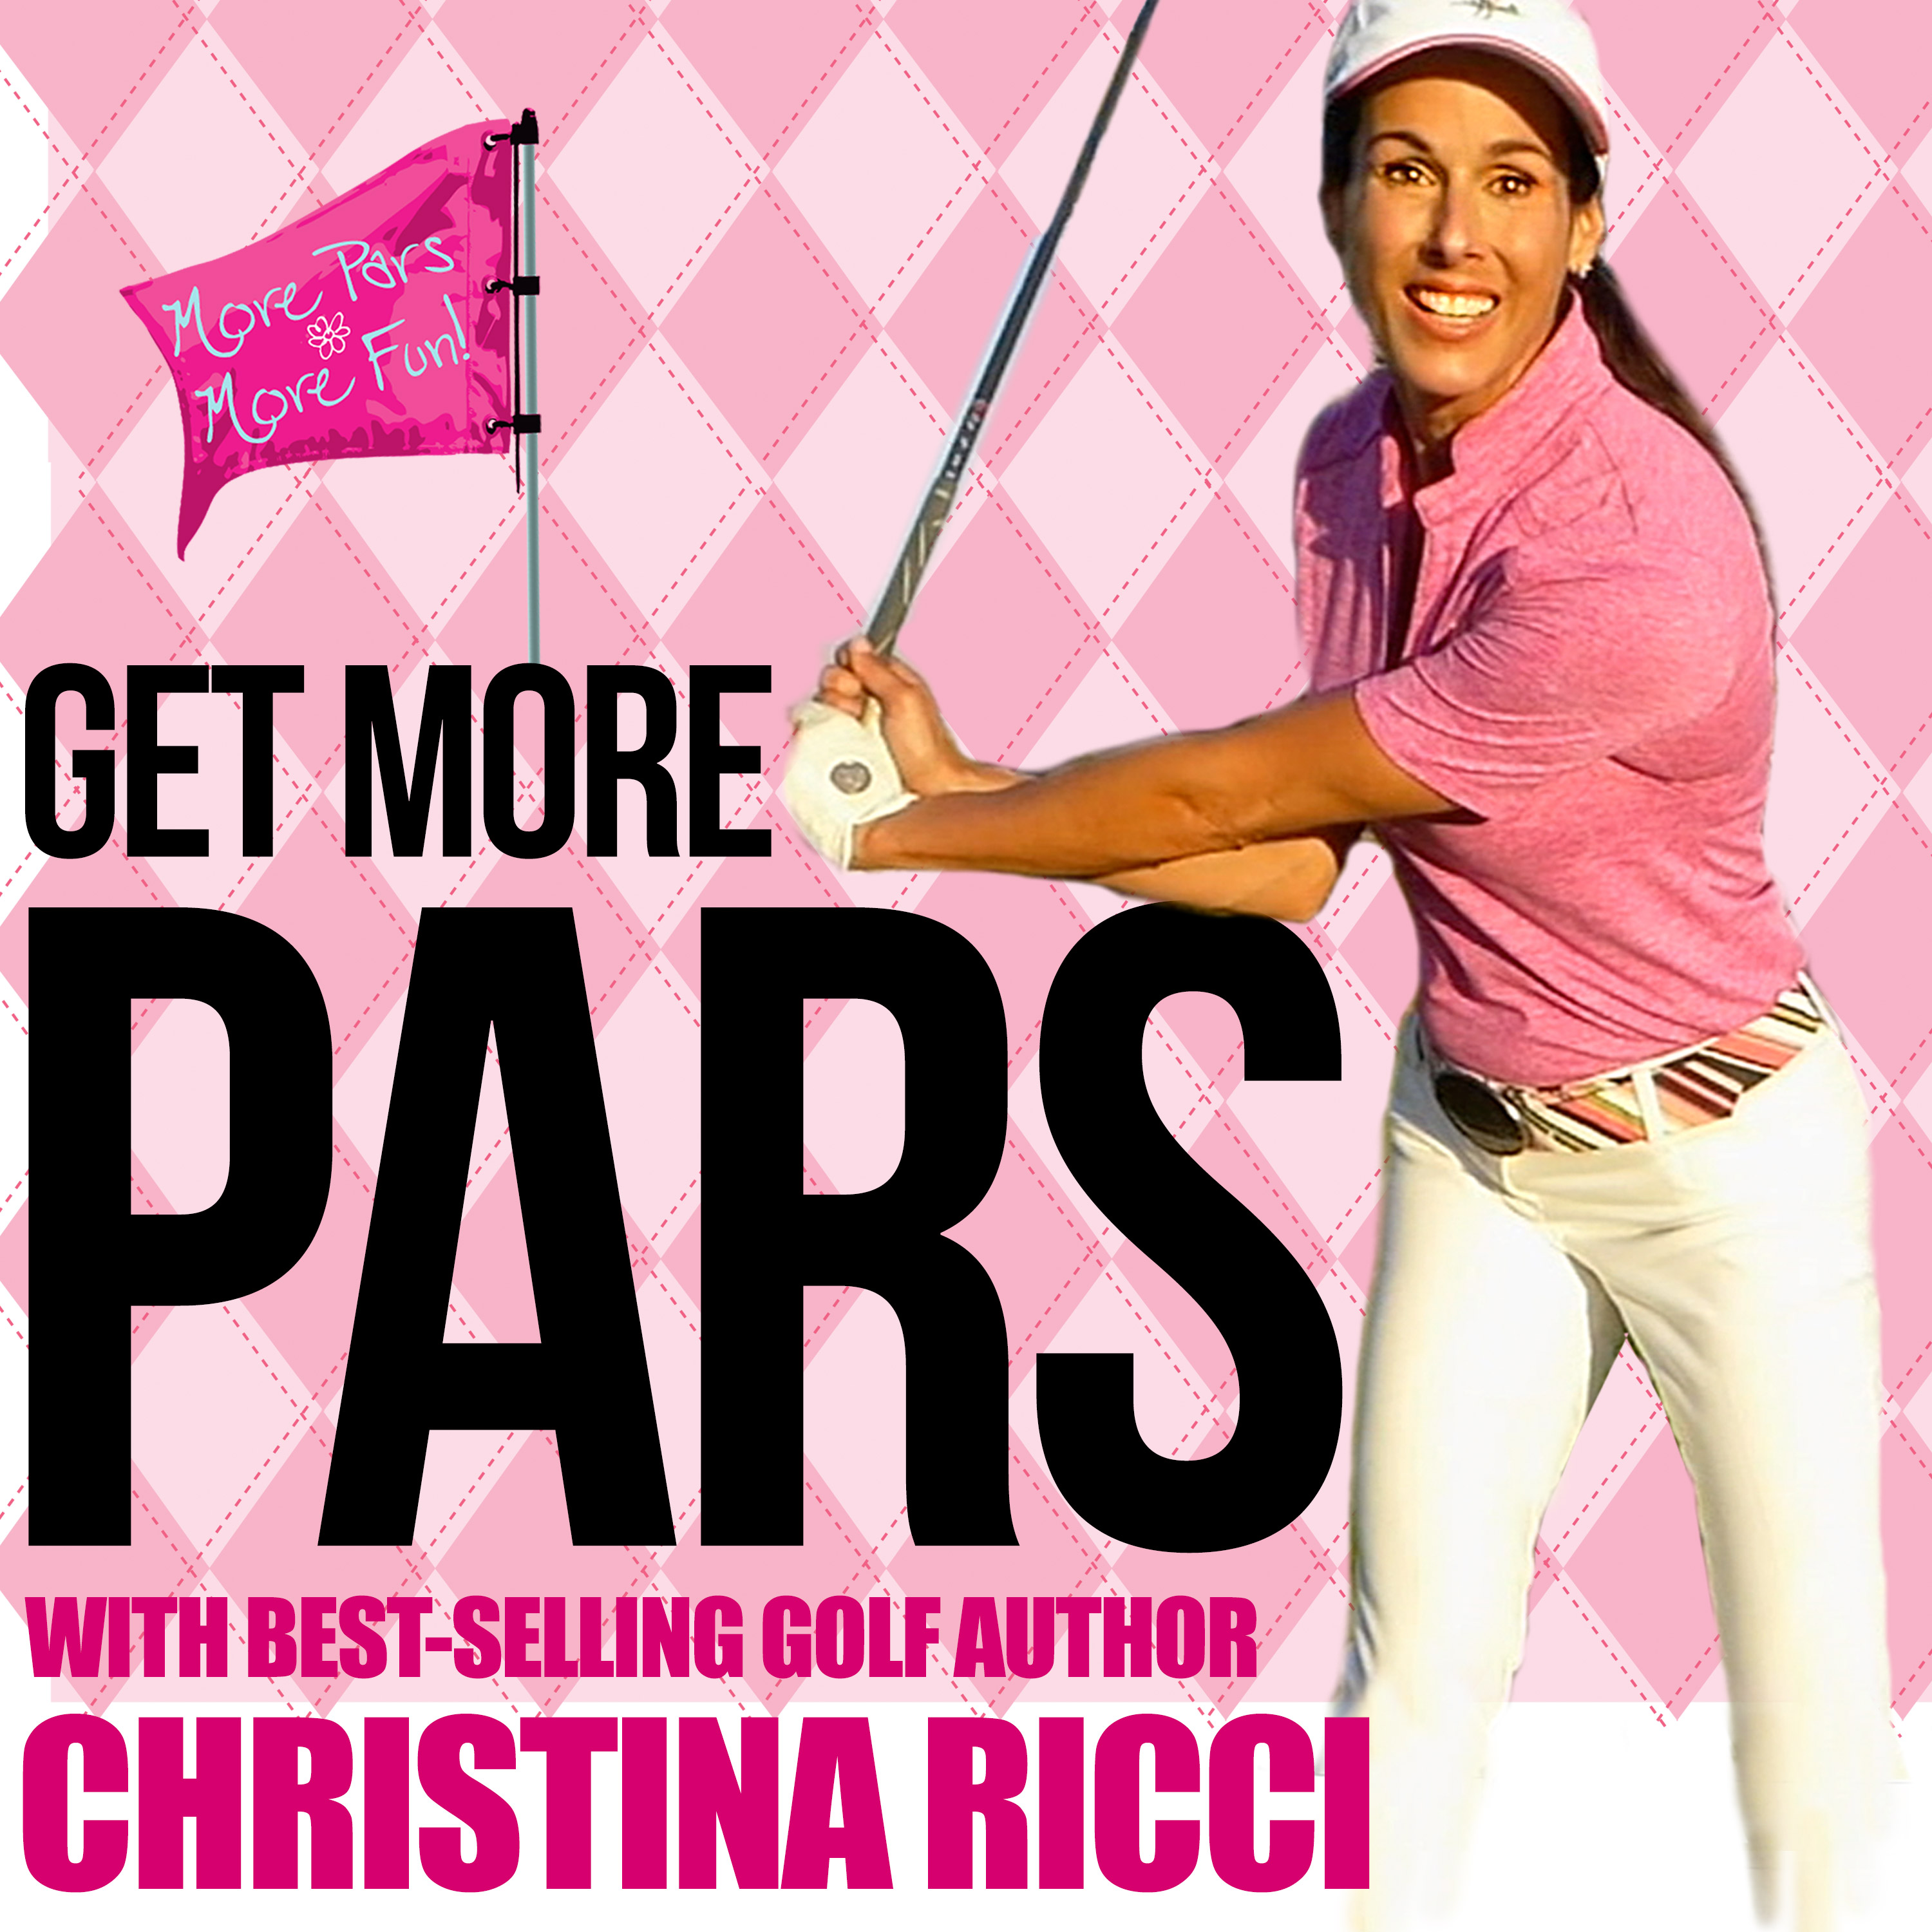 Get More Pars Podcast on iTunes